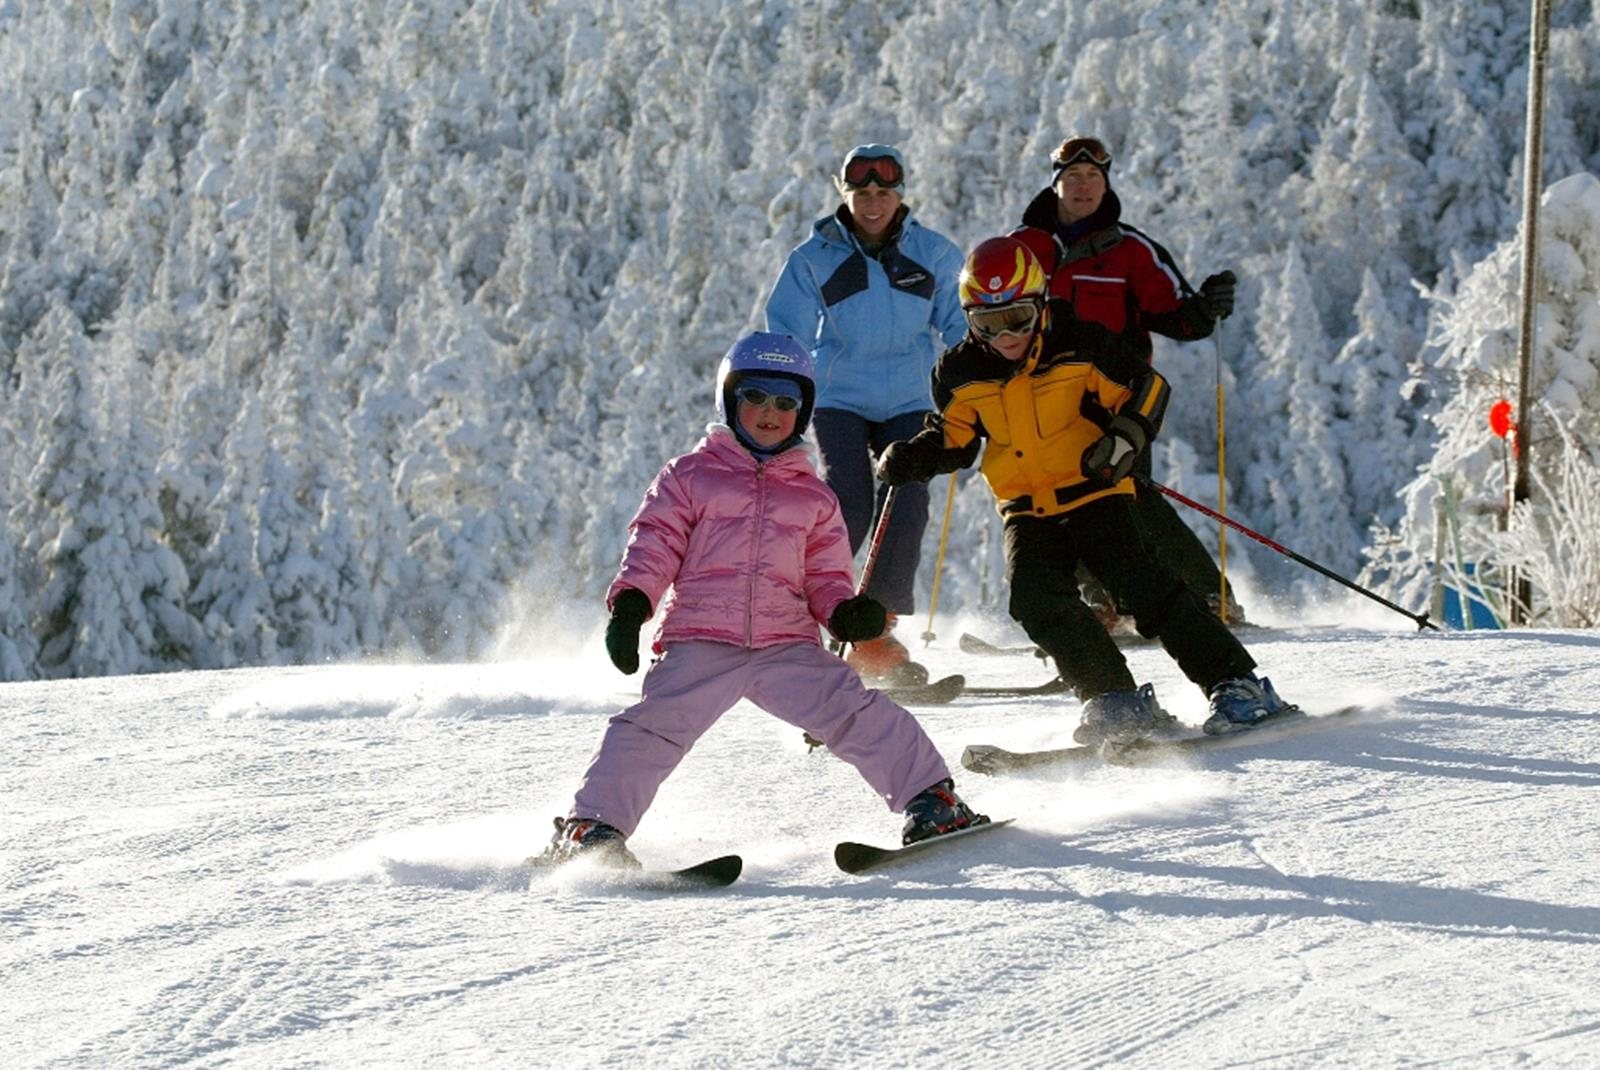 A family of skiers. Credit: Dennis Curran.